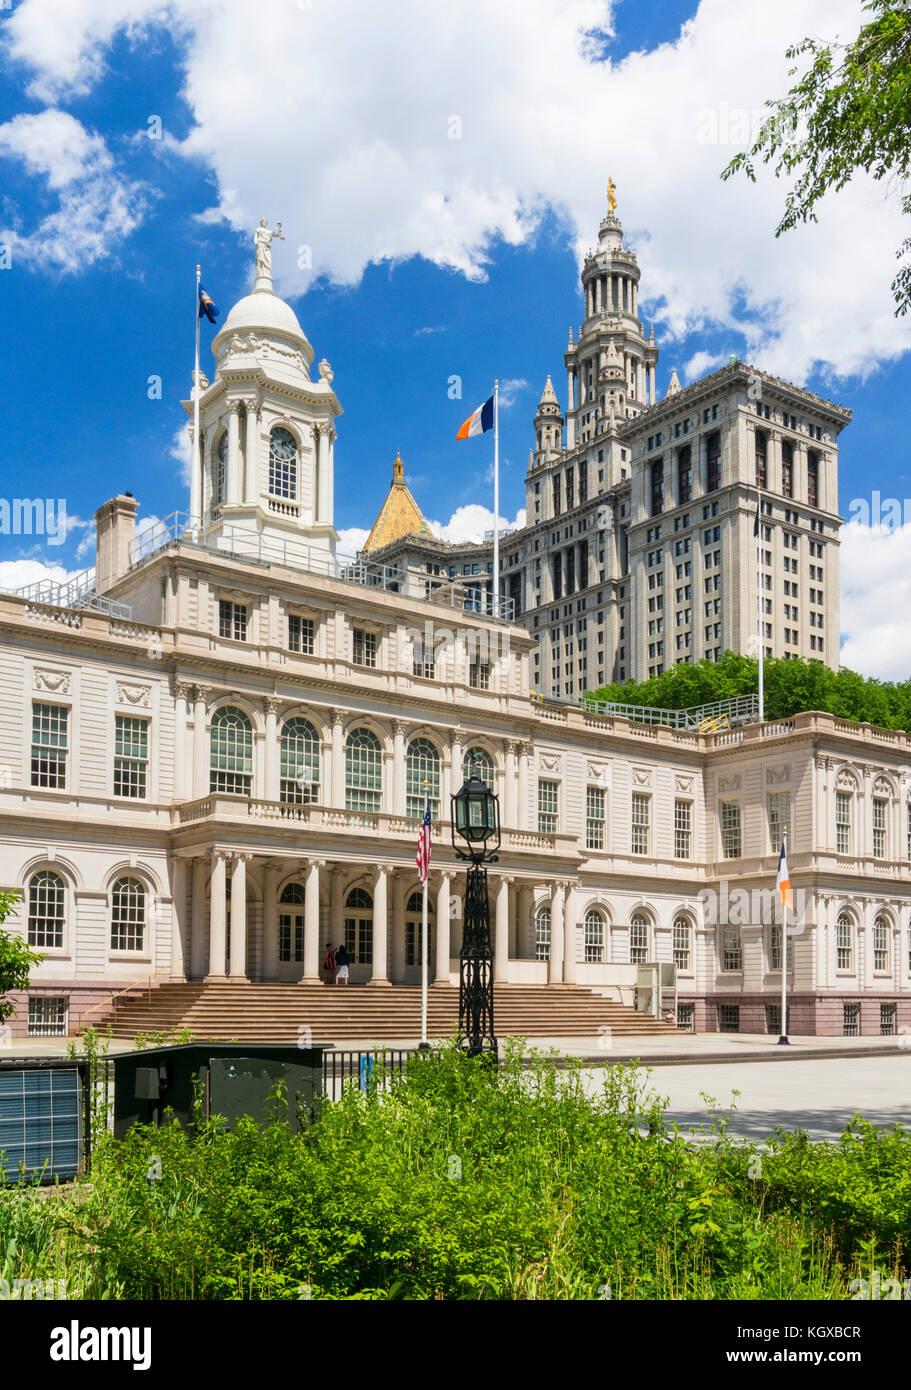 New york usa new york New York City Hall New York City government offices city hall park Manhattan New York United - Stock Image